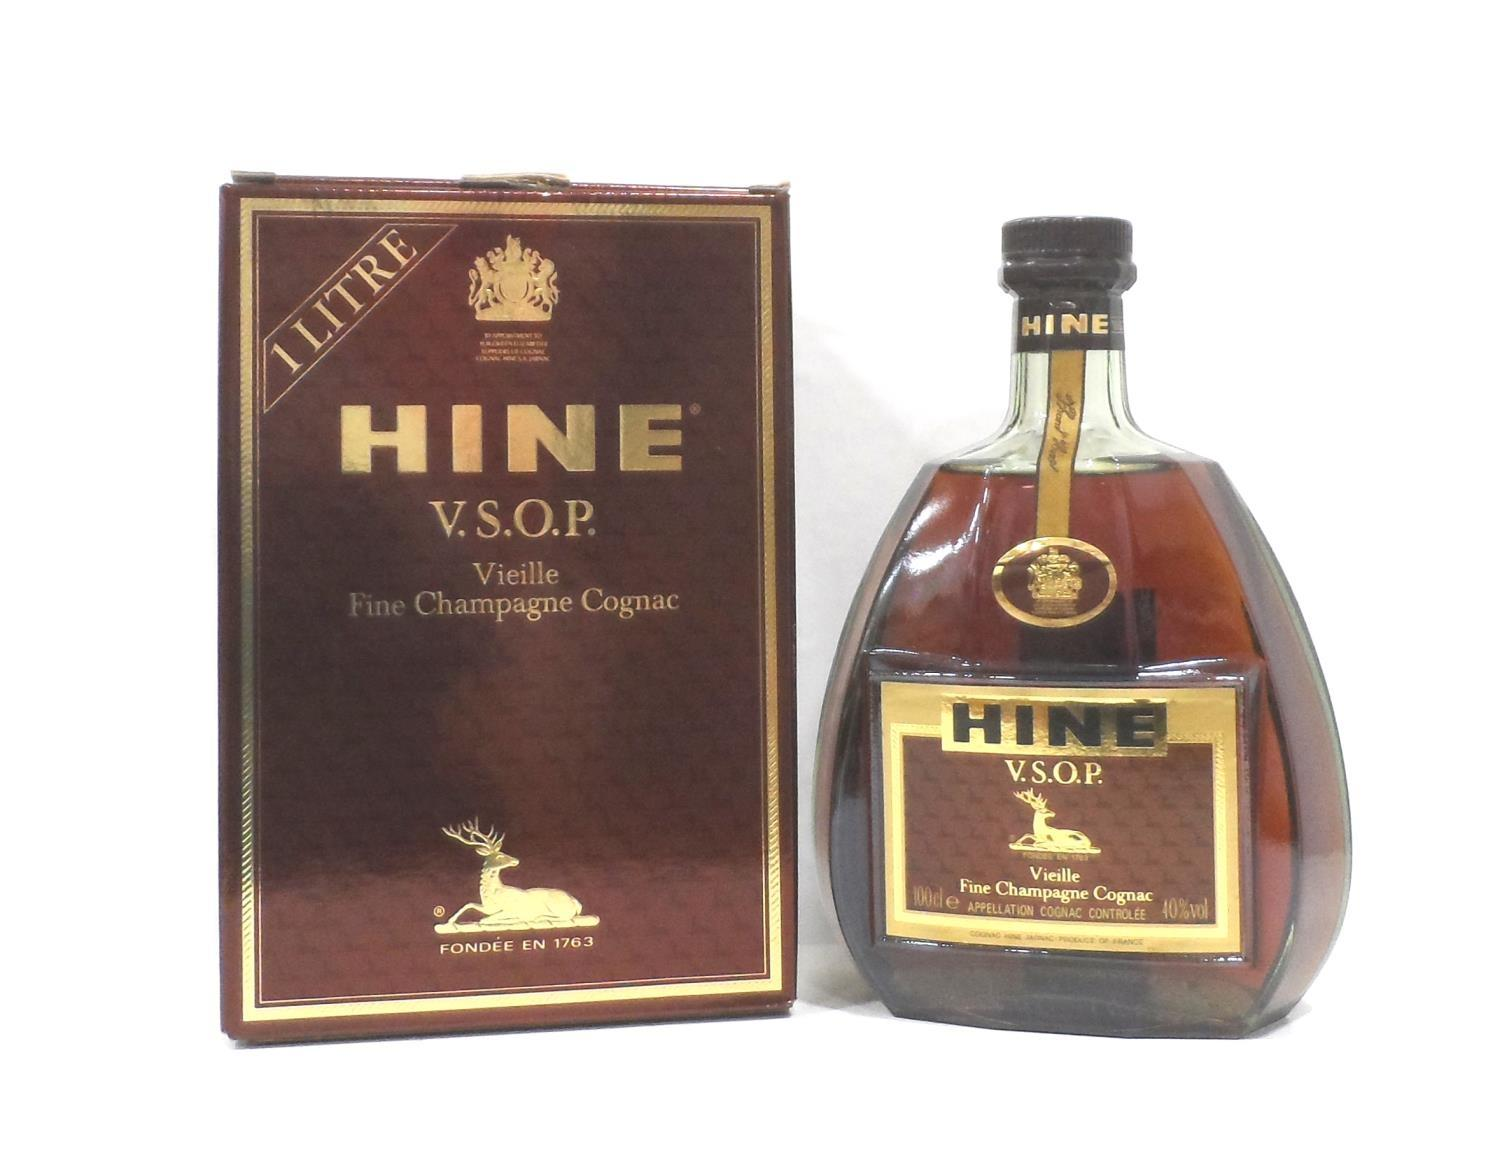 Lot 53 - HINE V.S.O.P. VIEILLE FINE CHAMPAGNE COGNAC A bottle of the illustrious Hine V.S.O.P. Vielle Fine